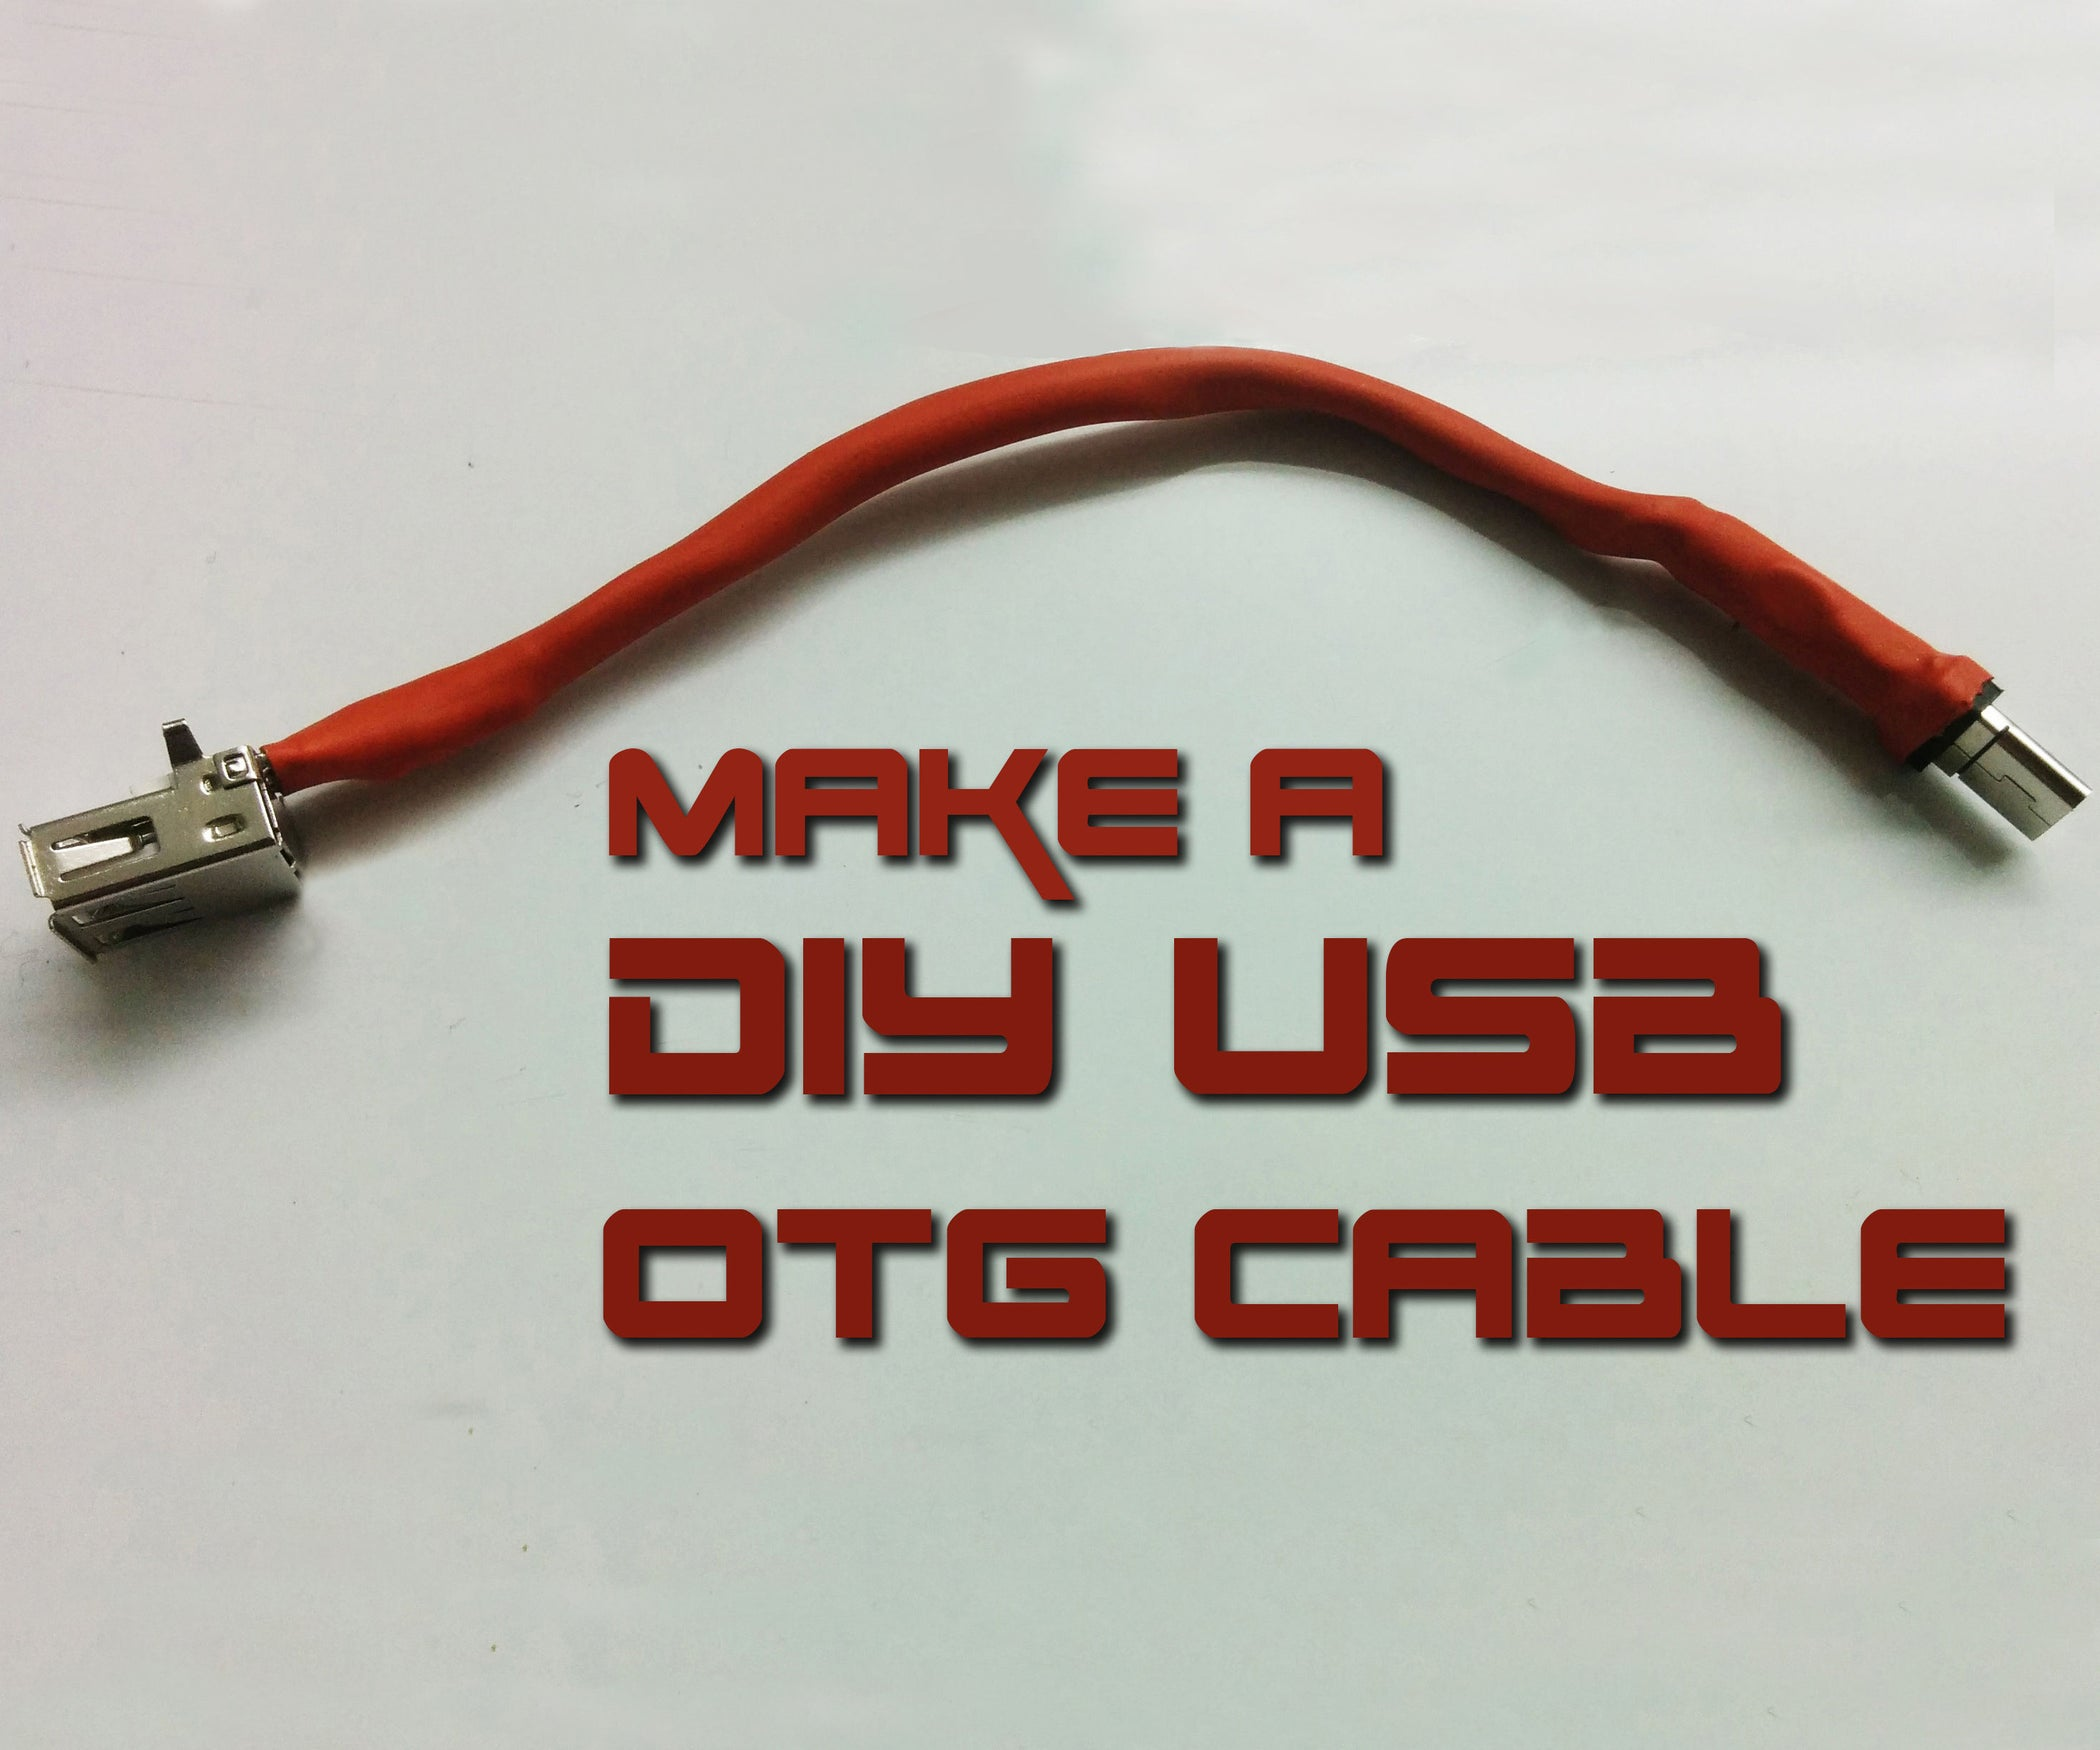 How to Make USB OTG Cable: 5 Steps (with Pictures)